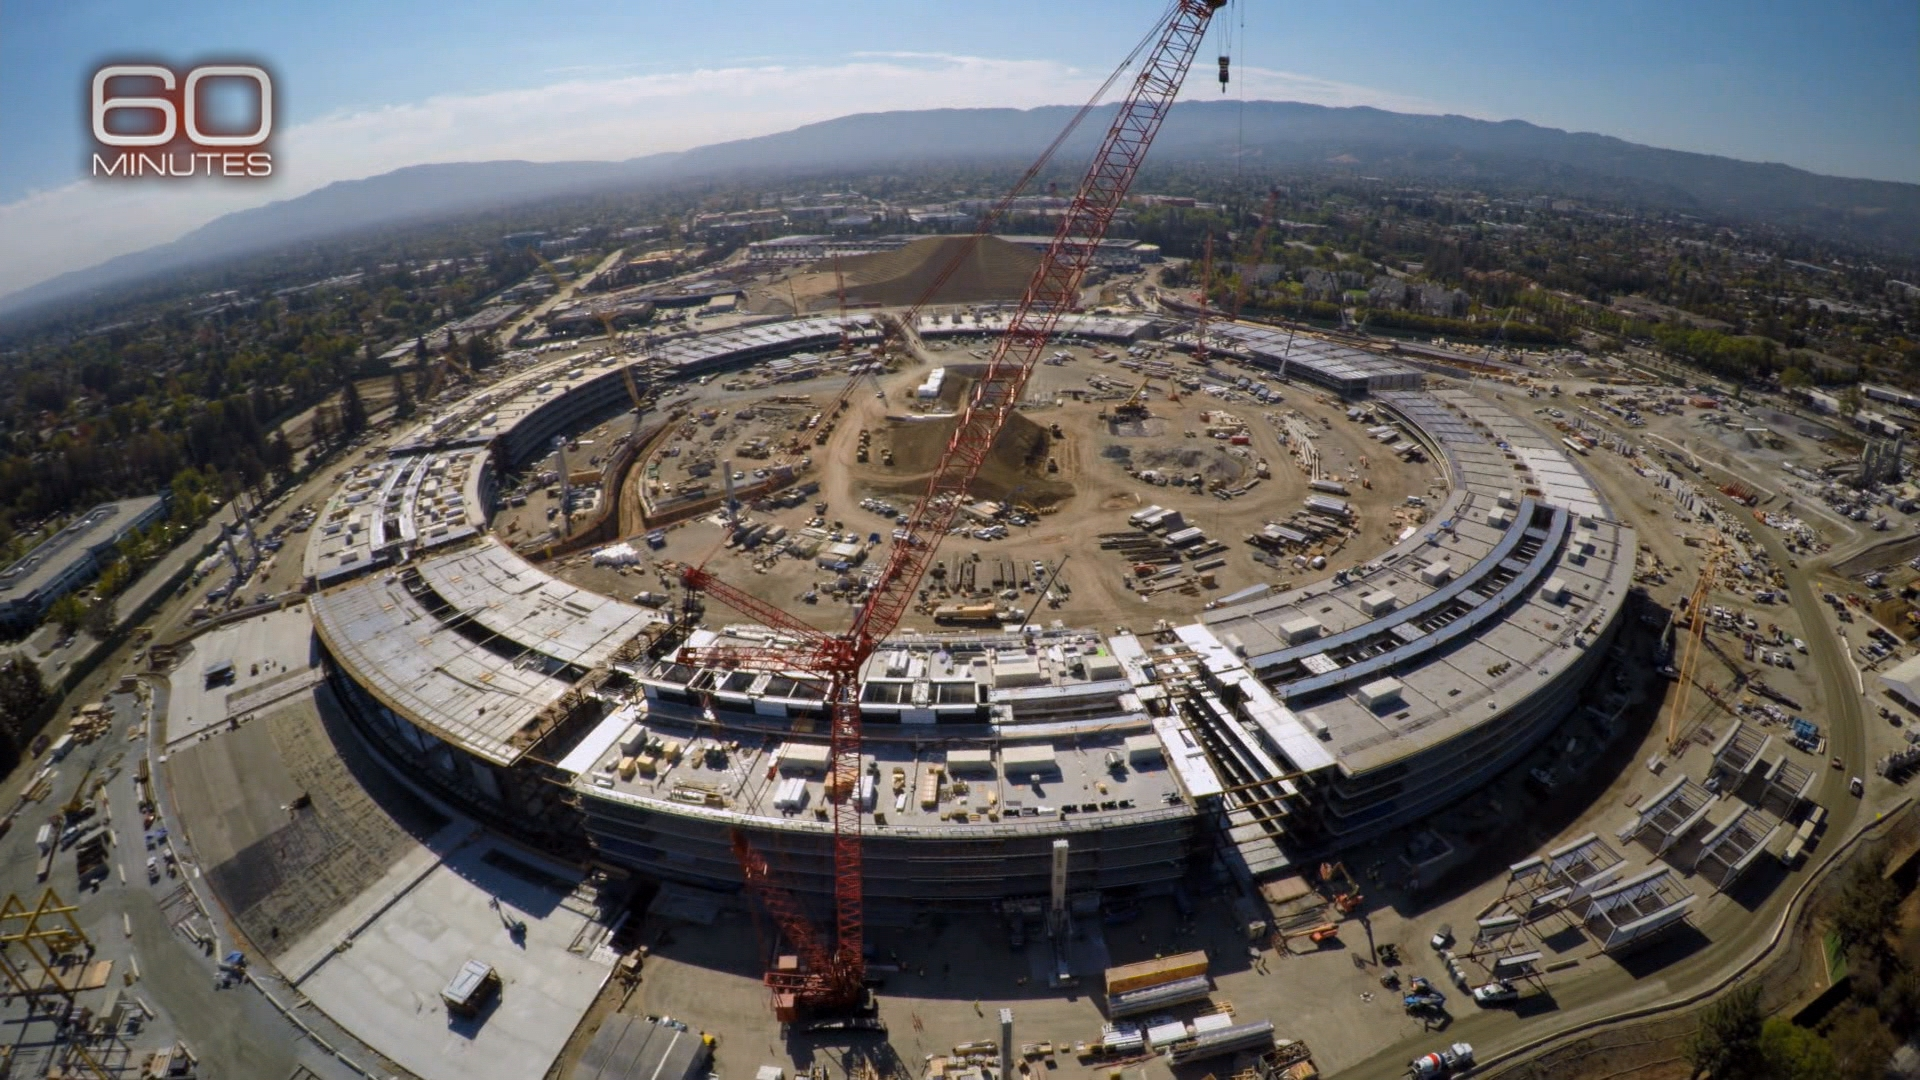 Cost to build a new home in california - Apple S Spaceship Inside Apple S New Spaceship Headquarters Pictures Cbs News